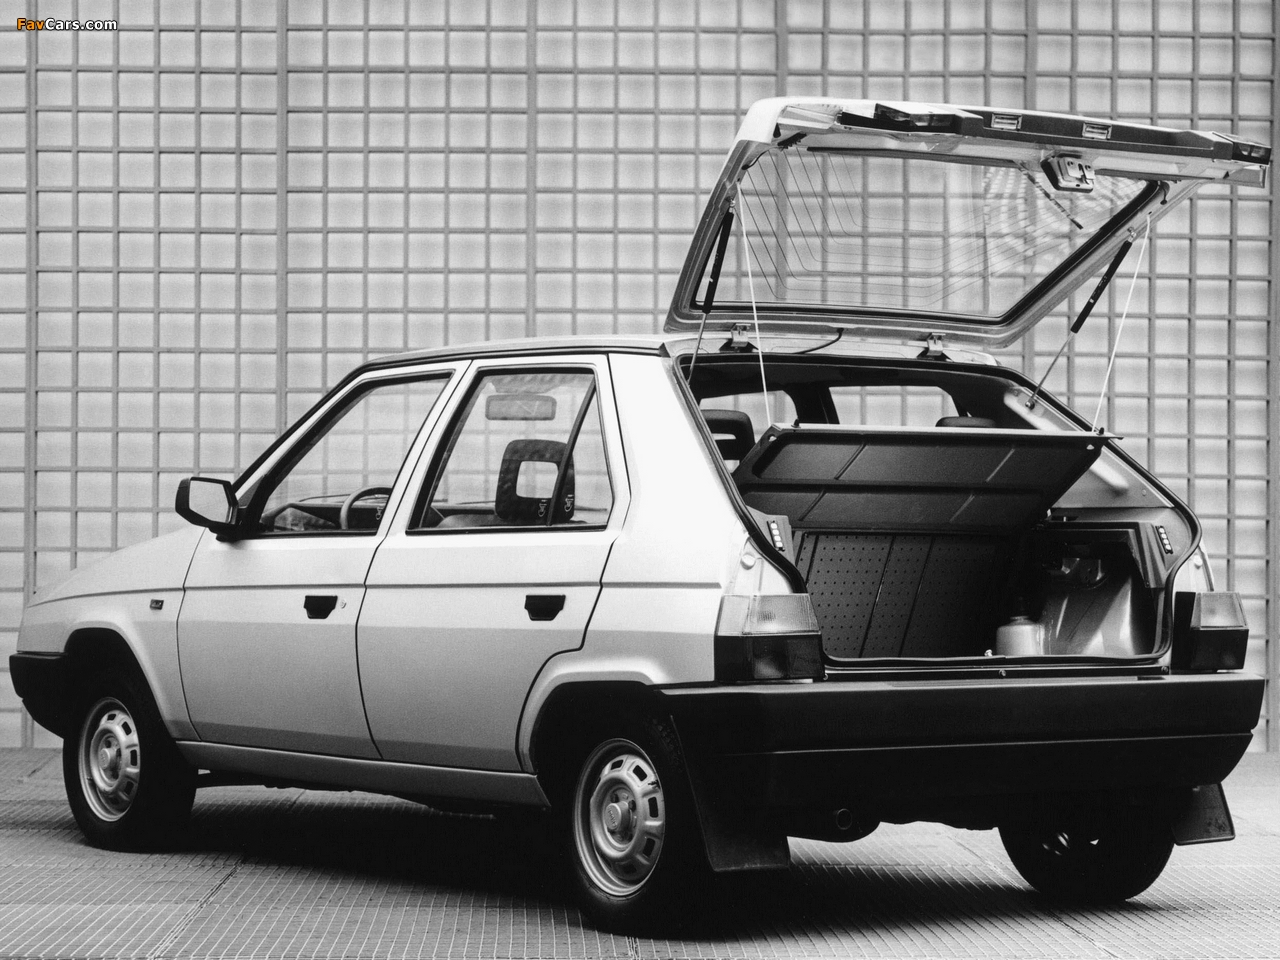 skoda_favorit_1987_photos_1.jpg